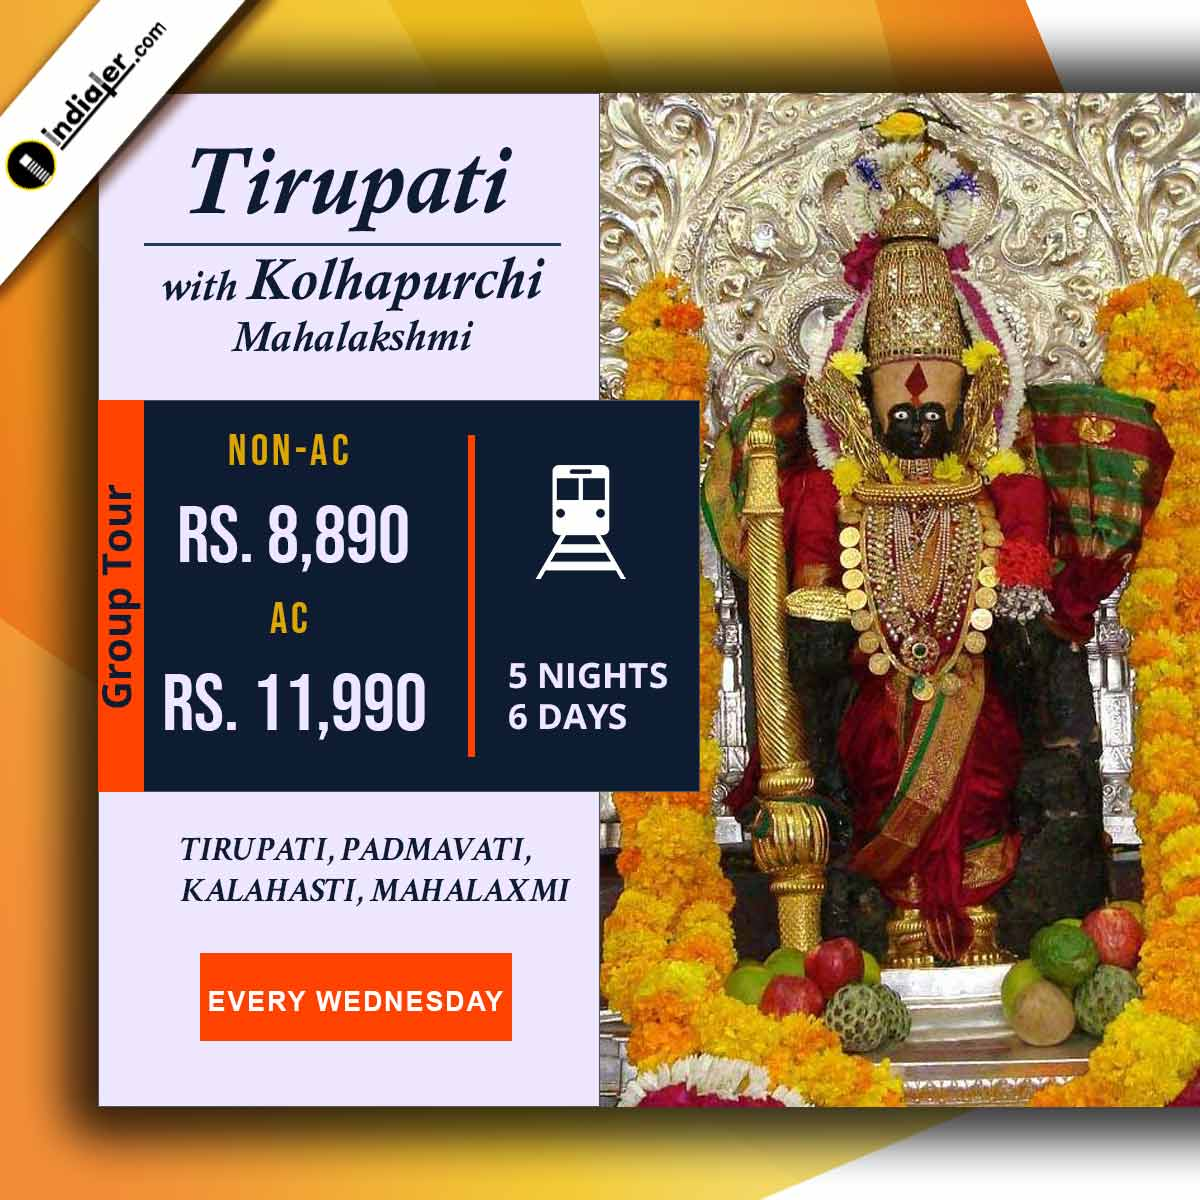 tirupati-with-kolhapurchi-mahalaxmi-travel-banner-design